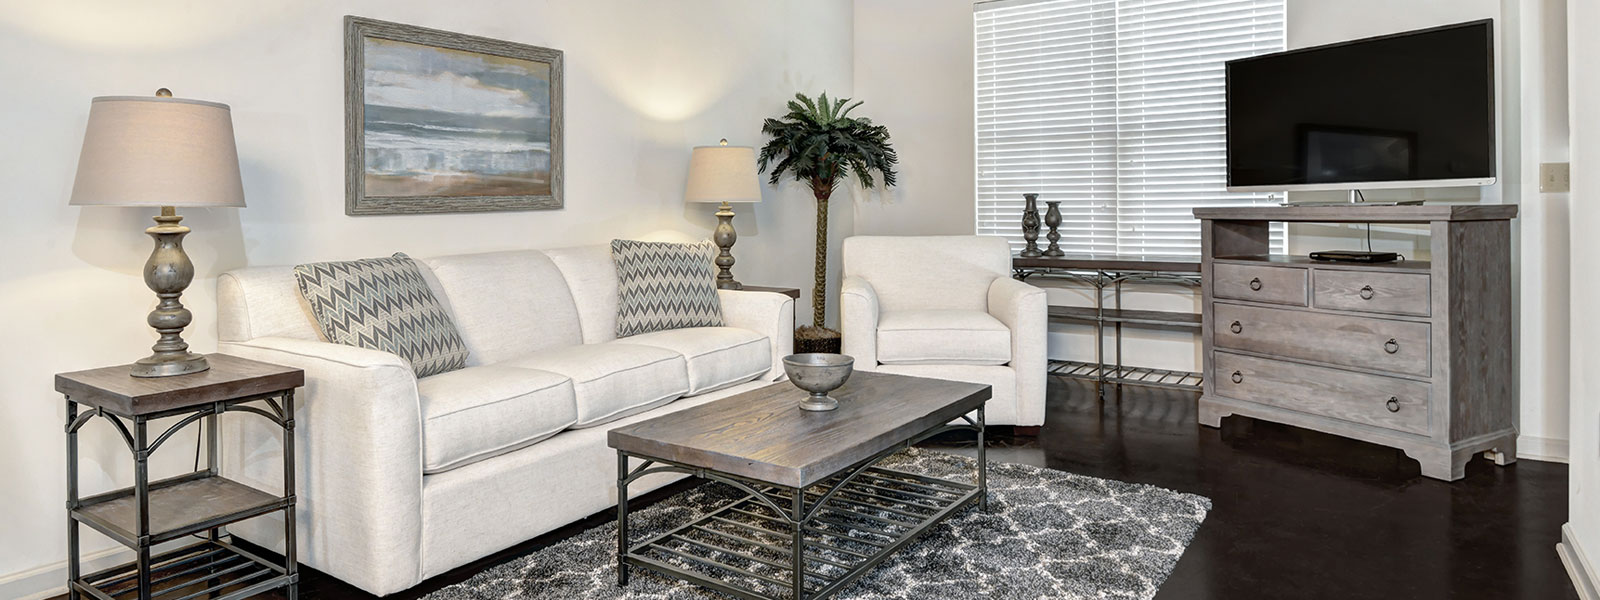 Superbe Rent Furniture In Atlanta   Apartments ...